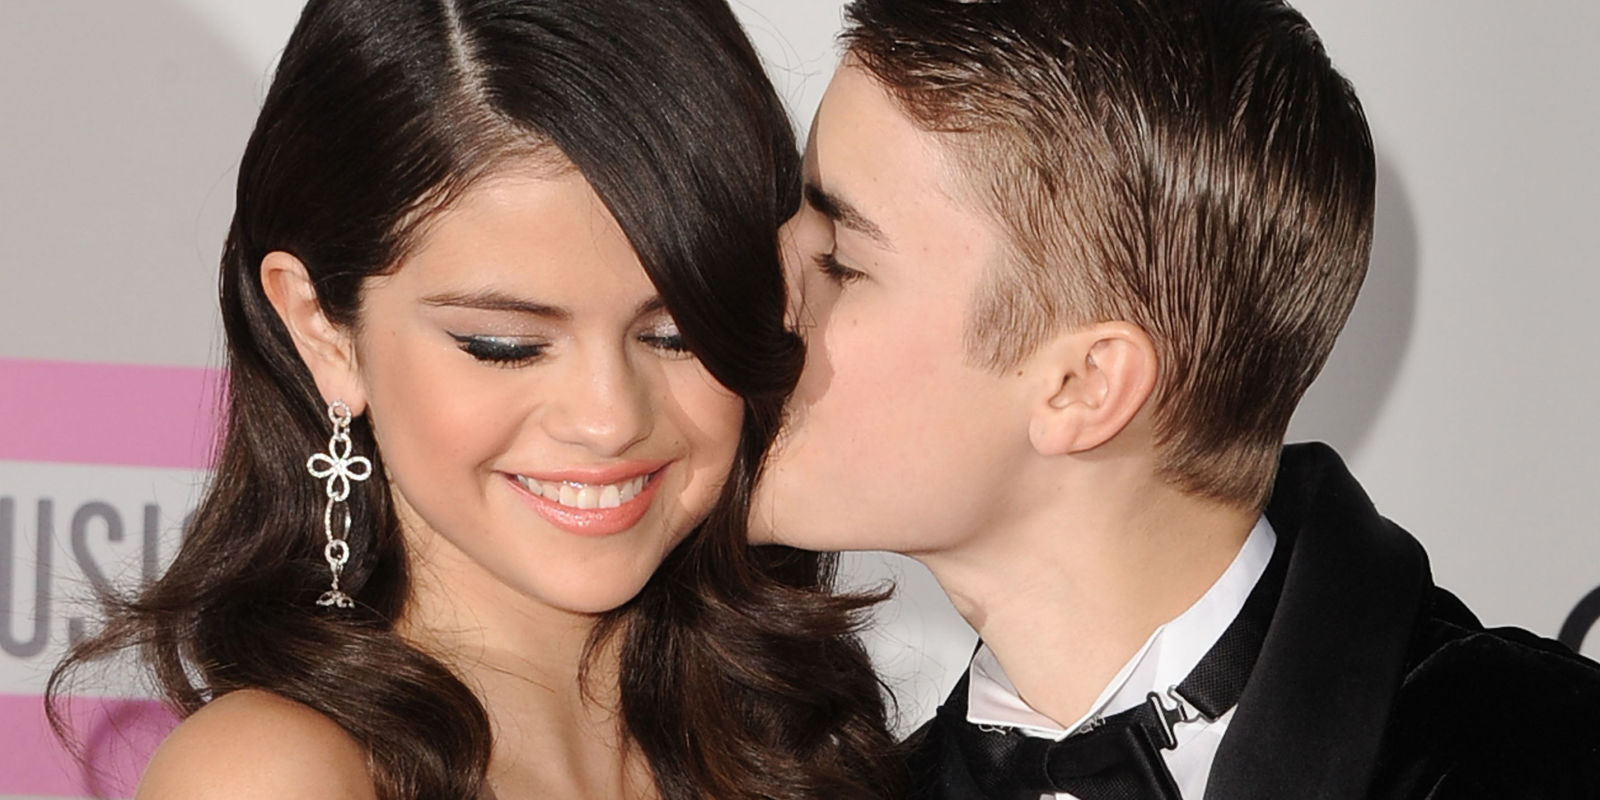 Justin Bieber Had The Sweetest Reaction To Selena Gomez Engagement Question